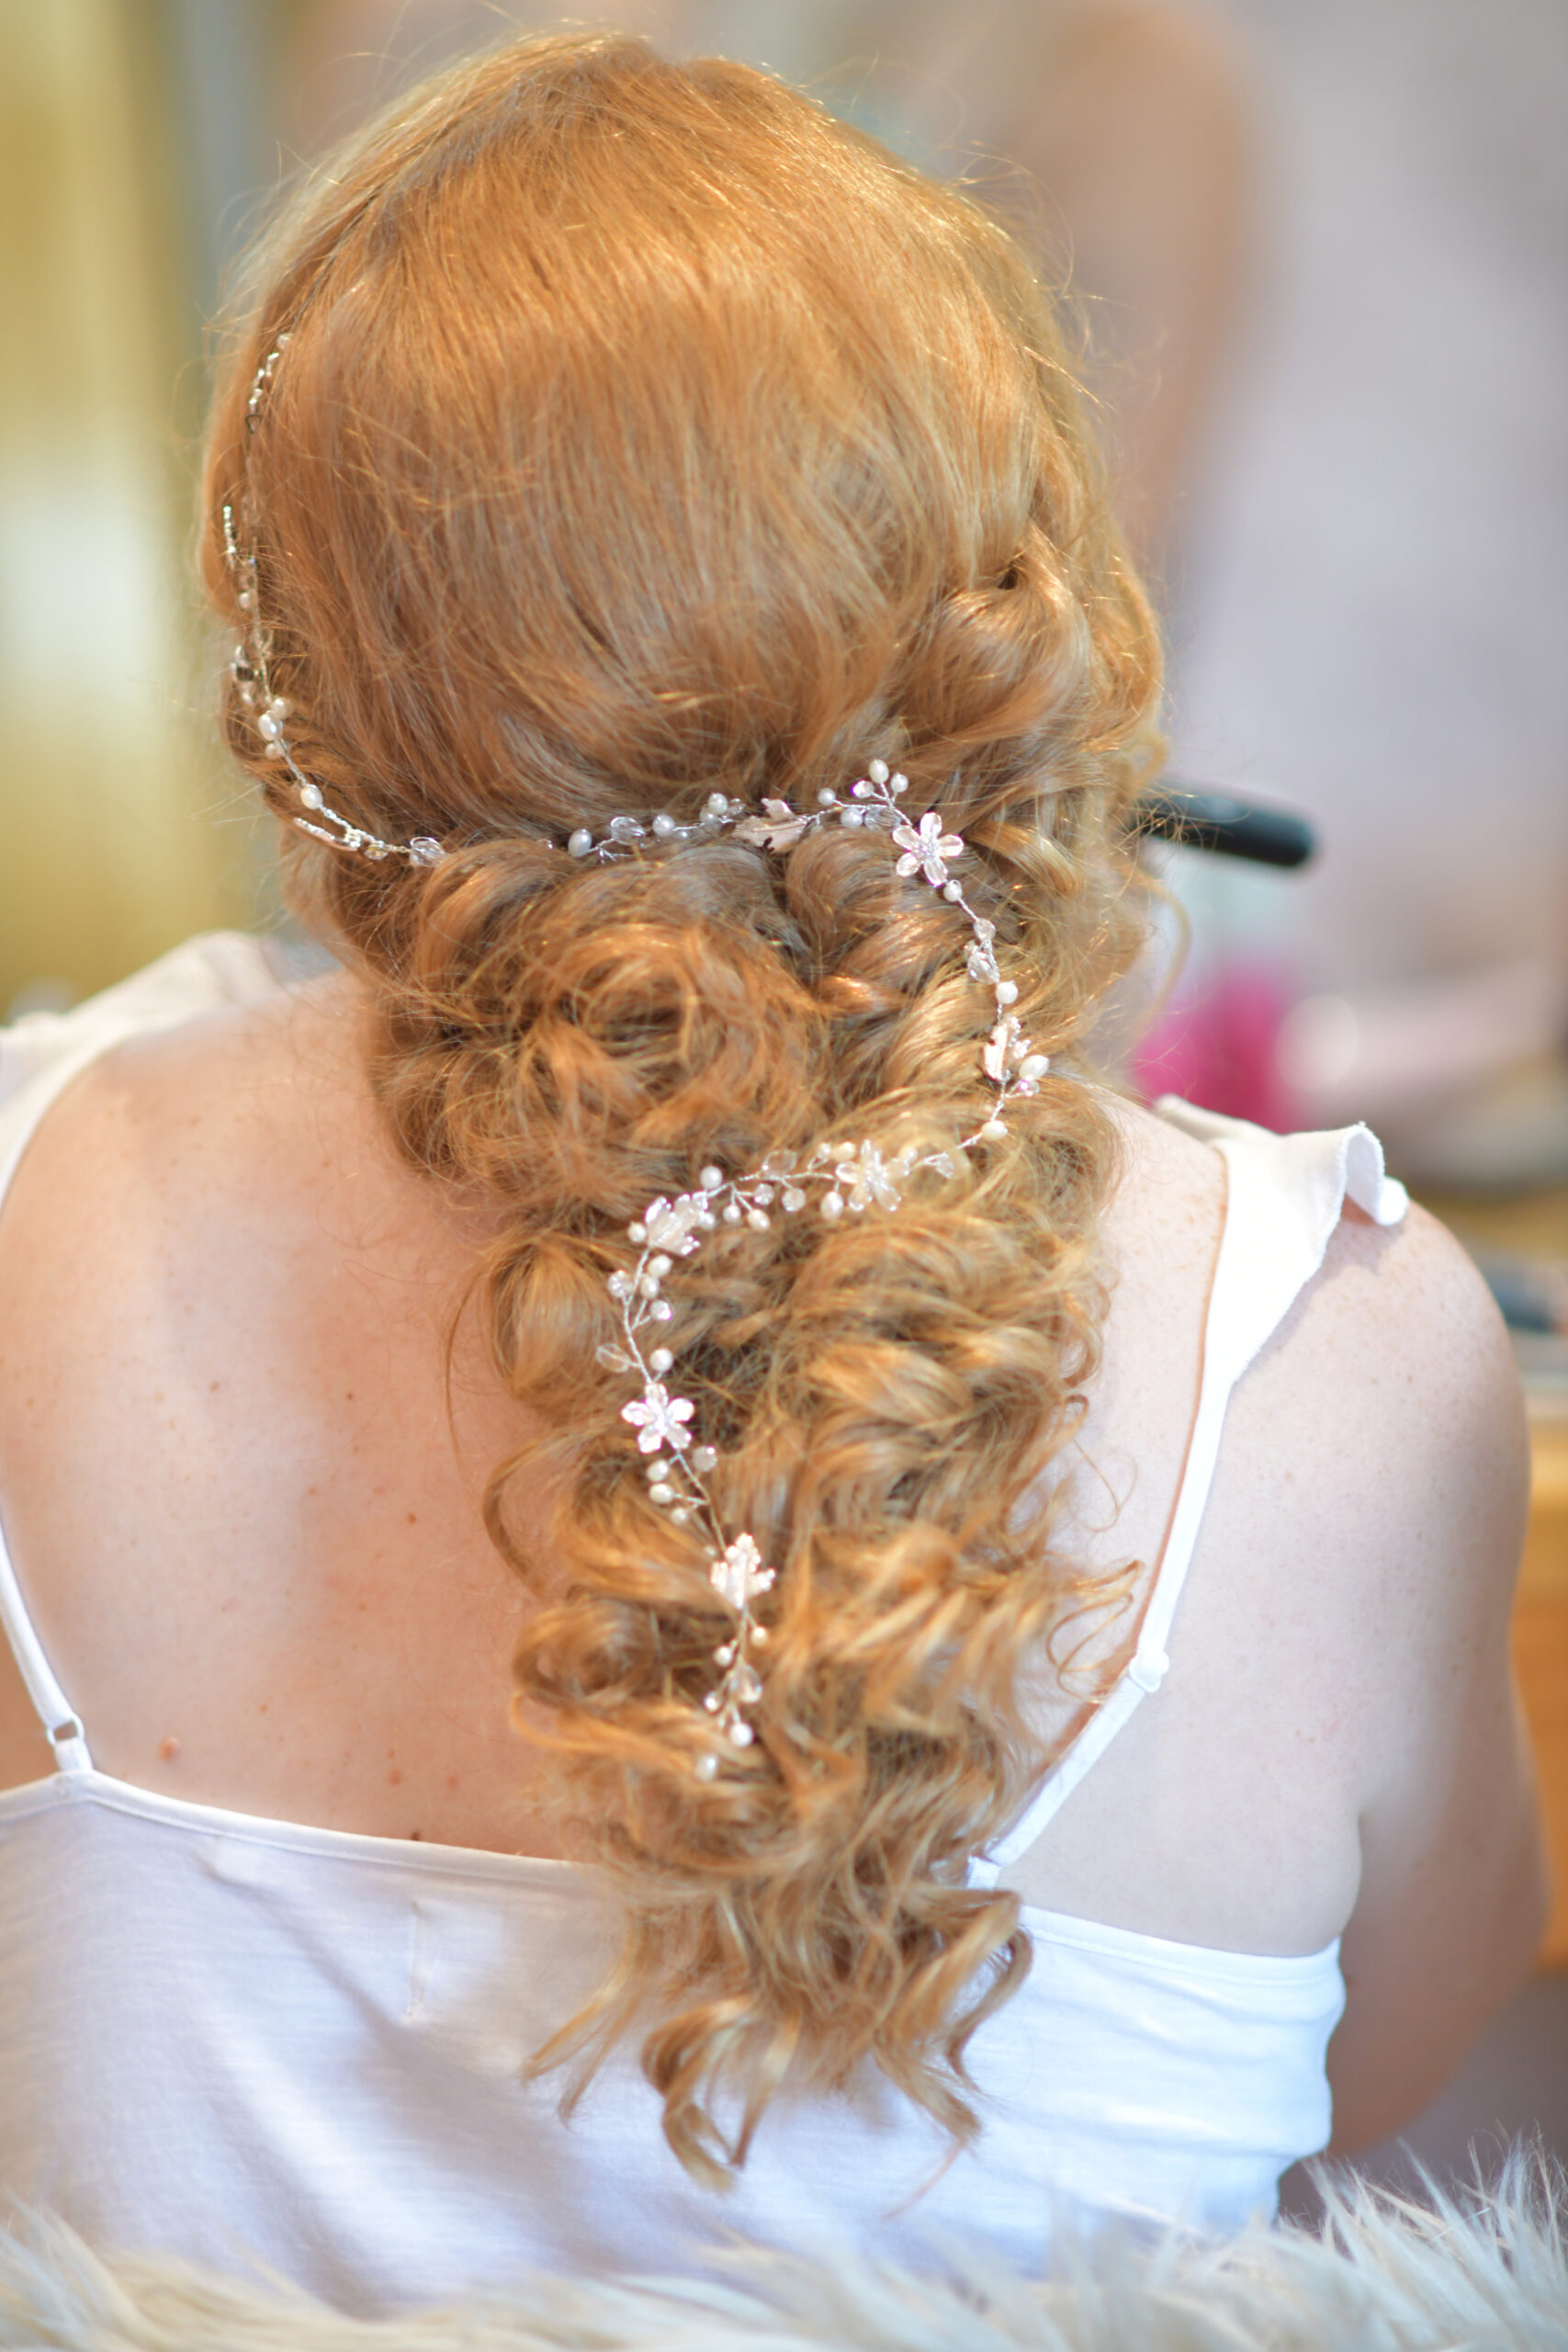 Bridal Hairdresser at The Bridal Suite at Wootton Park